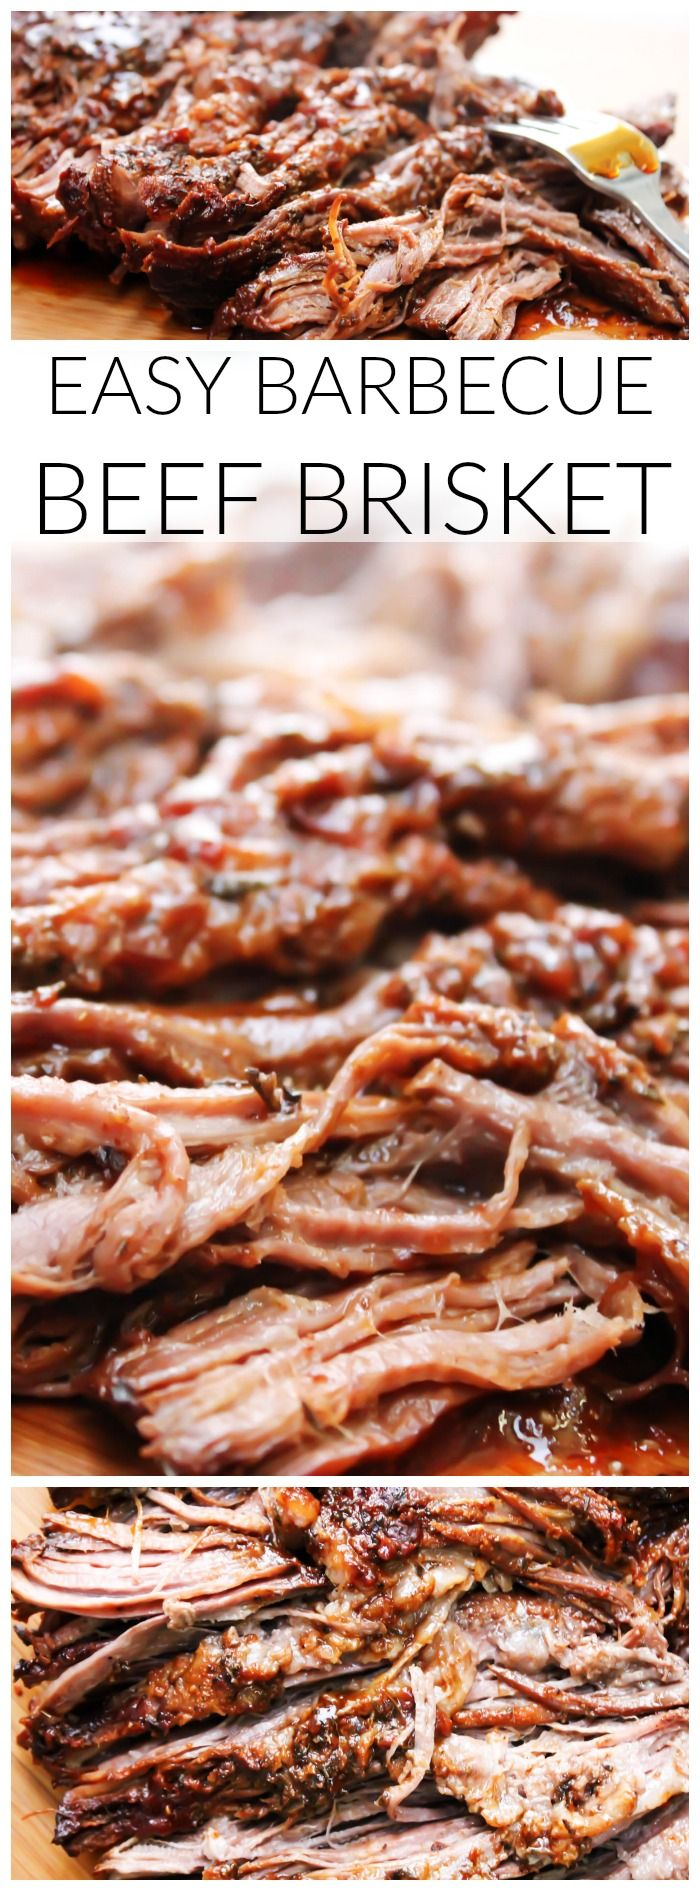 Easy Barbecue Brisket {Slow Cooker Recipe}***tried and true***